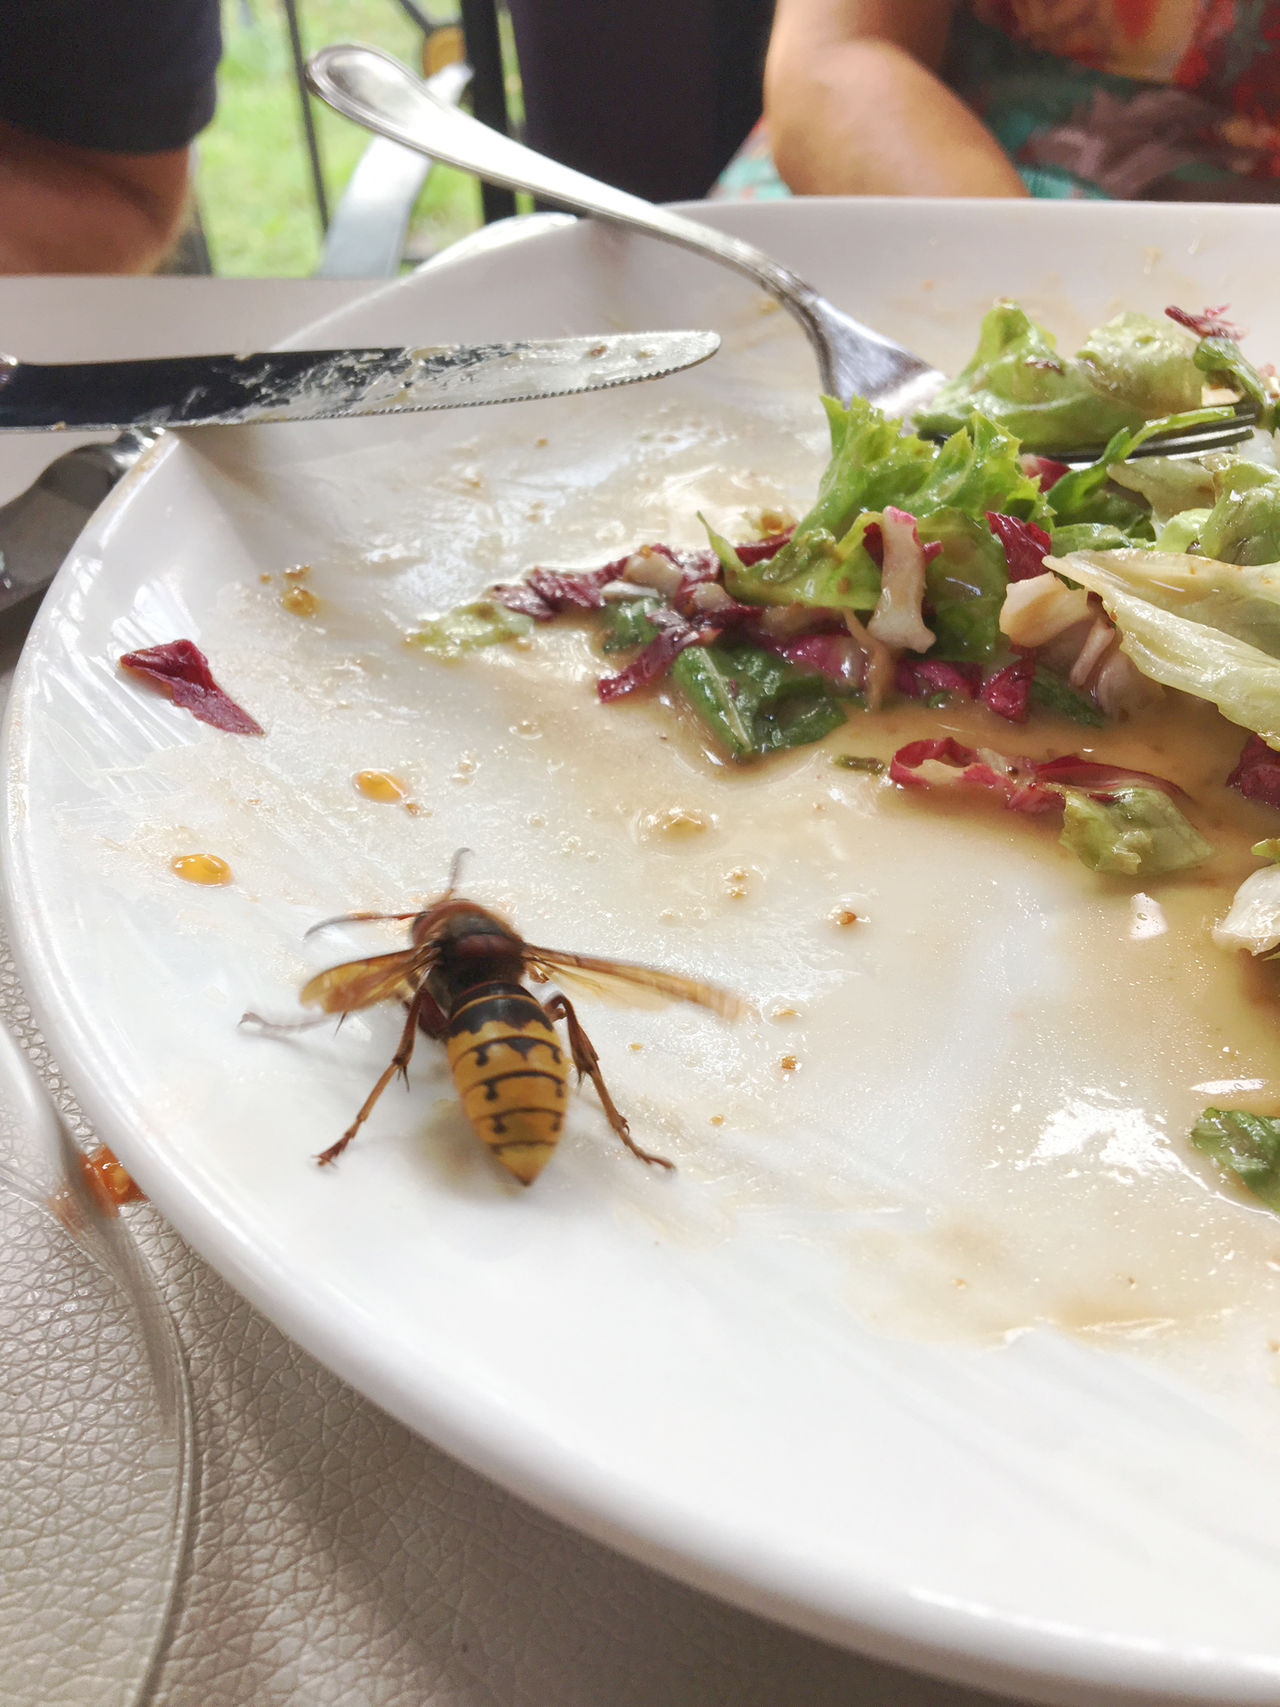 Wasp on a plate in summer Animal Bee Dangerous Food Insect Plate Summer Toxic Wasp Wespe